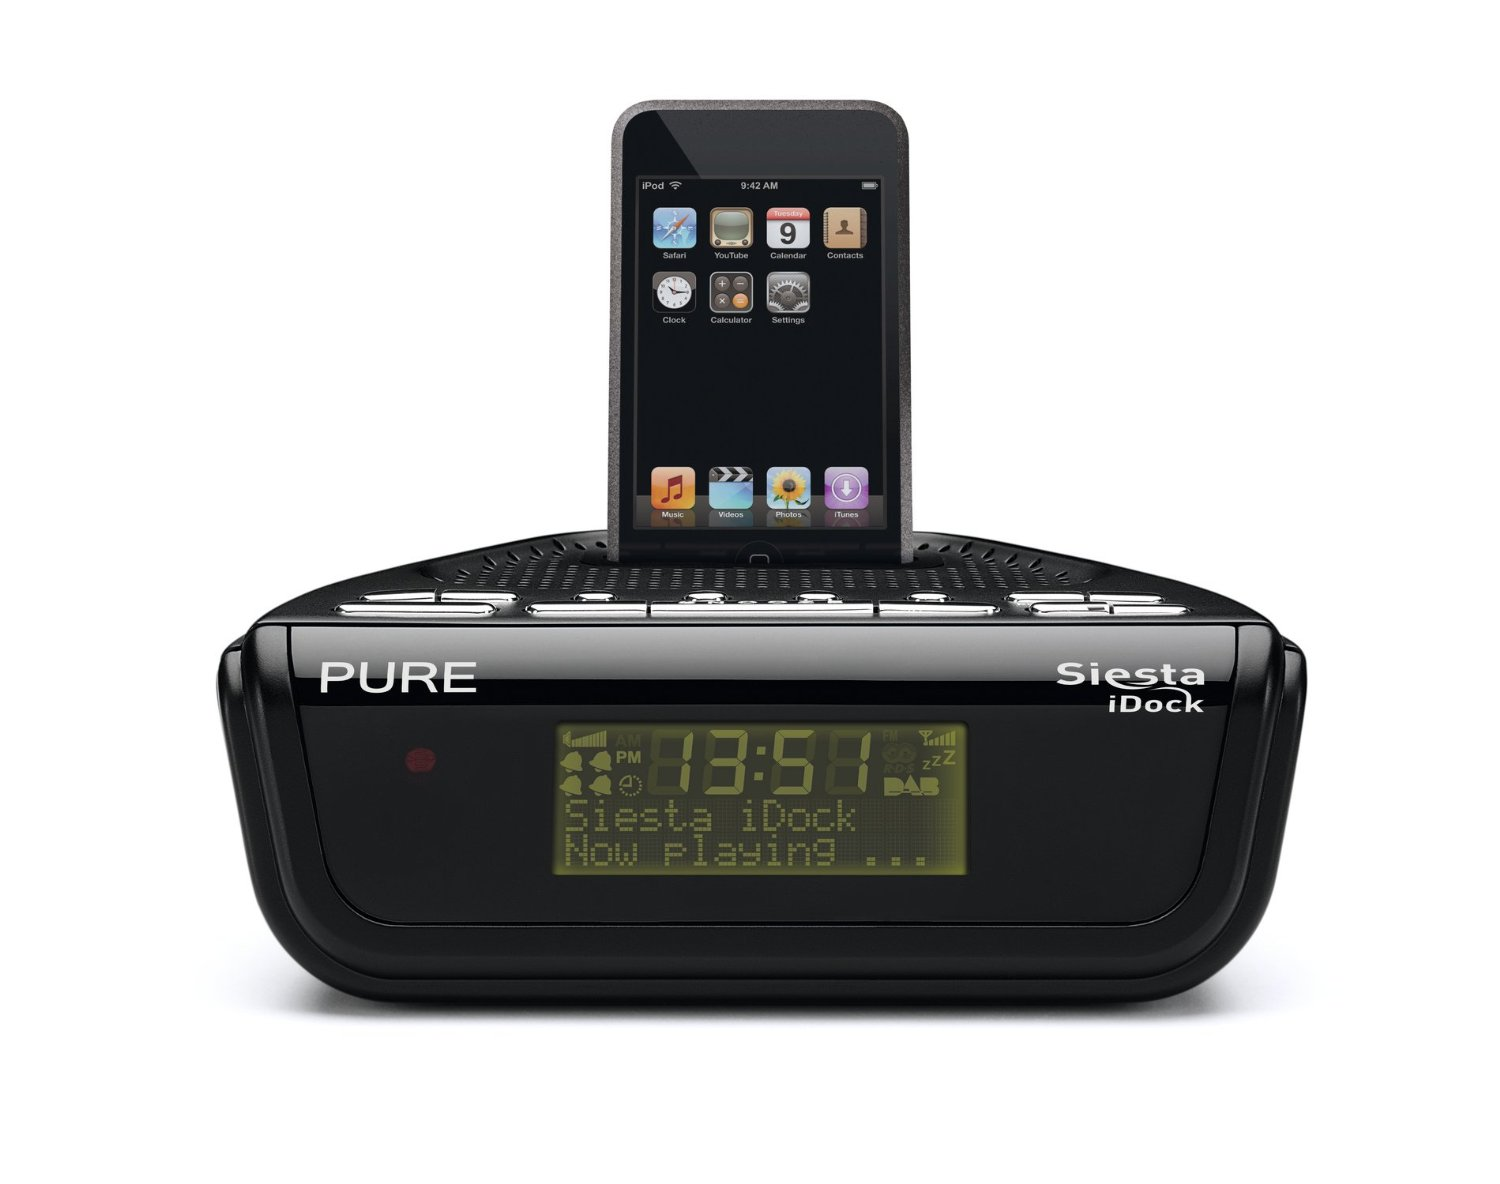 pure outlet siesta idock dab fm clock radio with ipod iphone dock station ebay. Black Bedroom Furniture Sets. Home Design Ideas